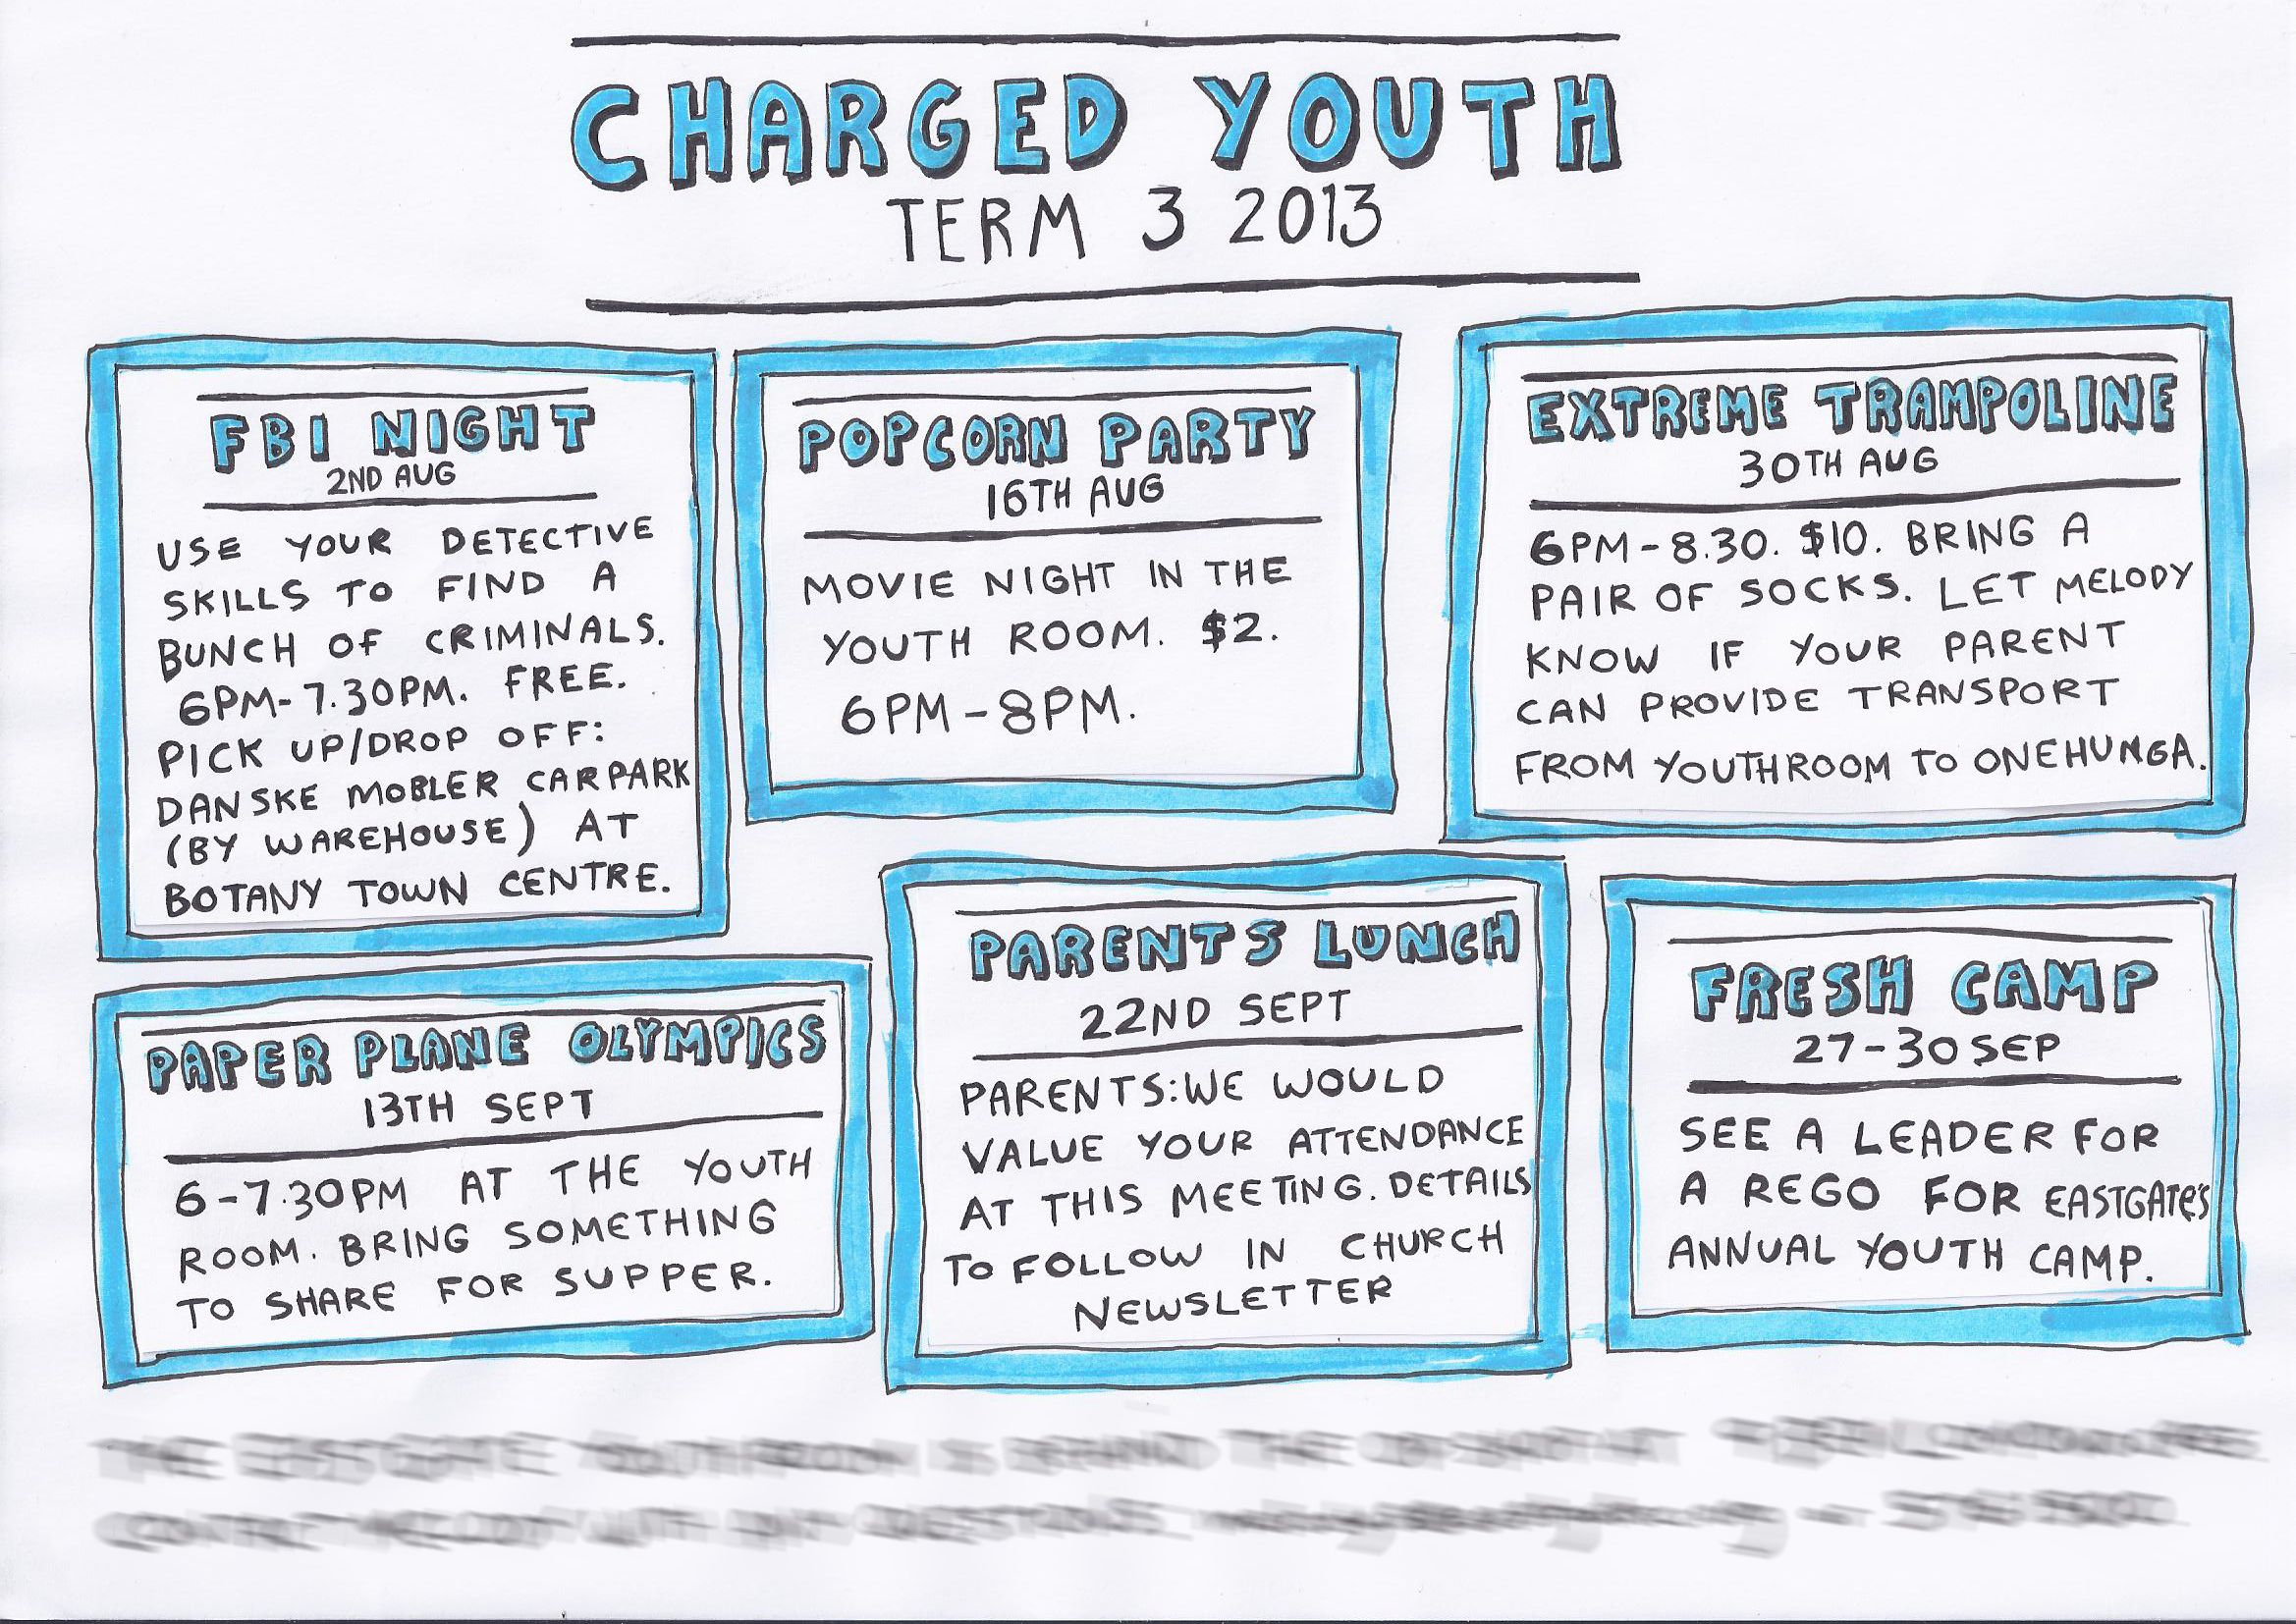 Fun Youth Group Events. Intermediates, Junior High, Middle School.